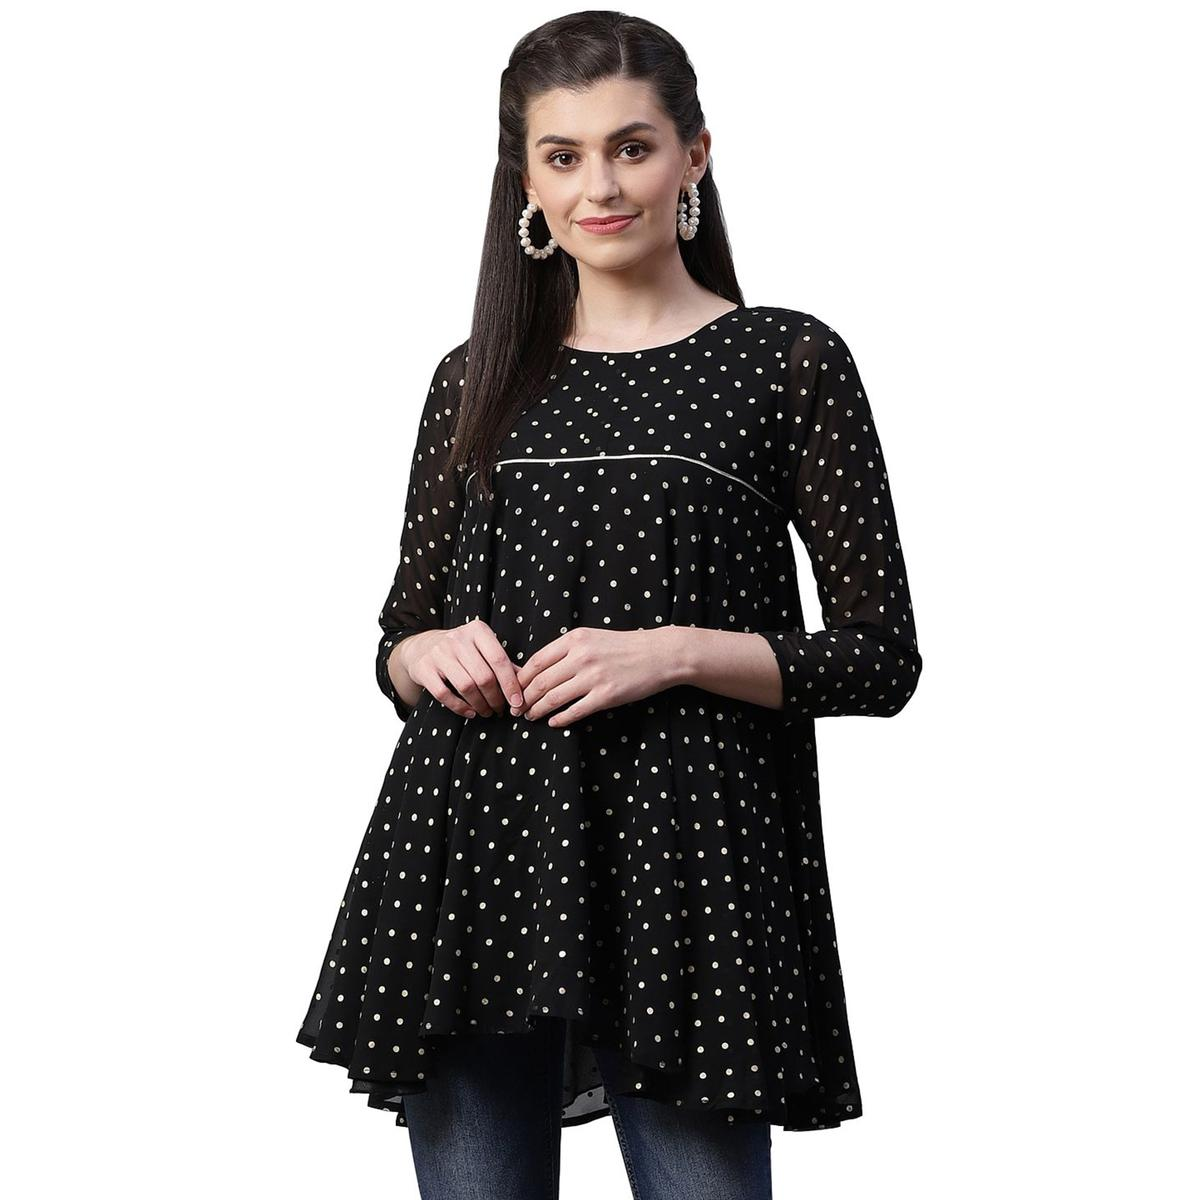 Ahalyaa - Black Colored casual Wear Polka Dot Pigment Printed Georgette Tunic